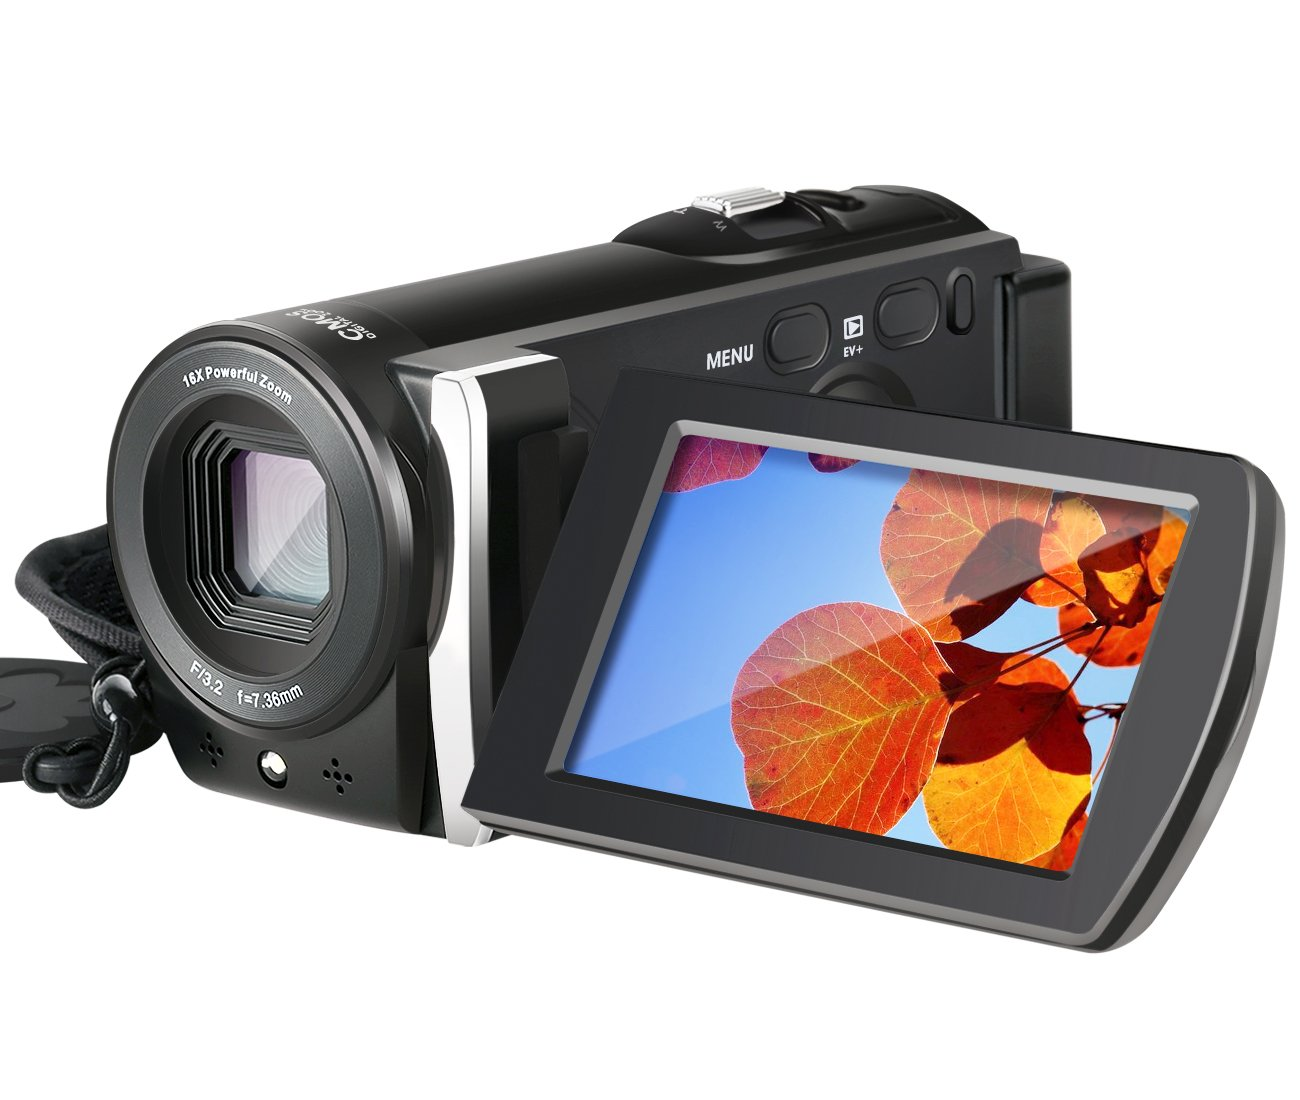 Camera Camcorder, Besteker 1080P Video Camera 20MP 16X Digital Zoom Handycam Camcorder with 3.0'' TFT LCD Screen support HDMI Output